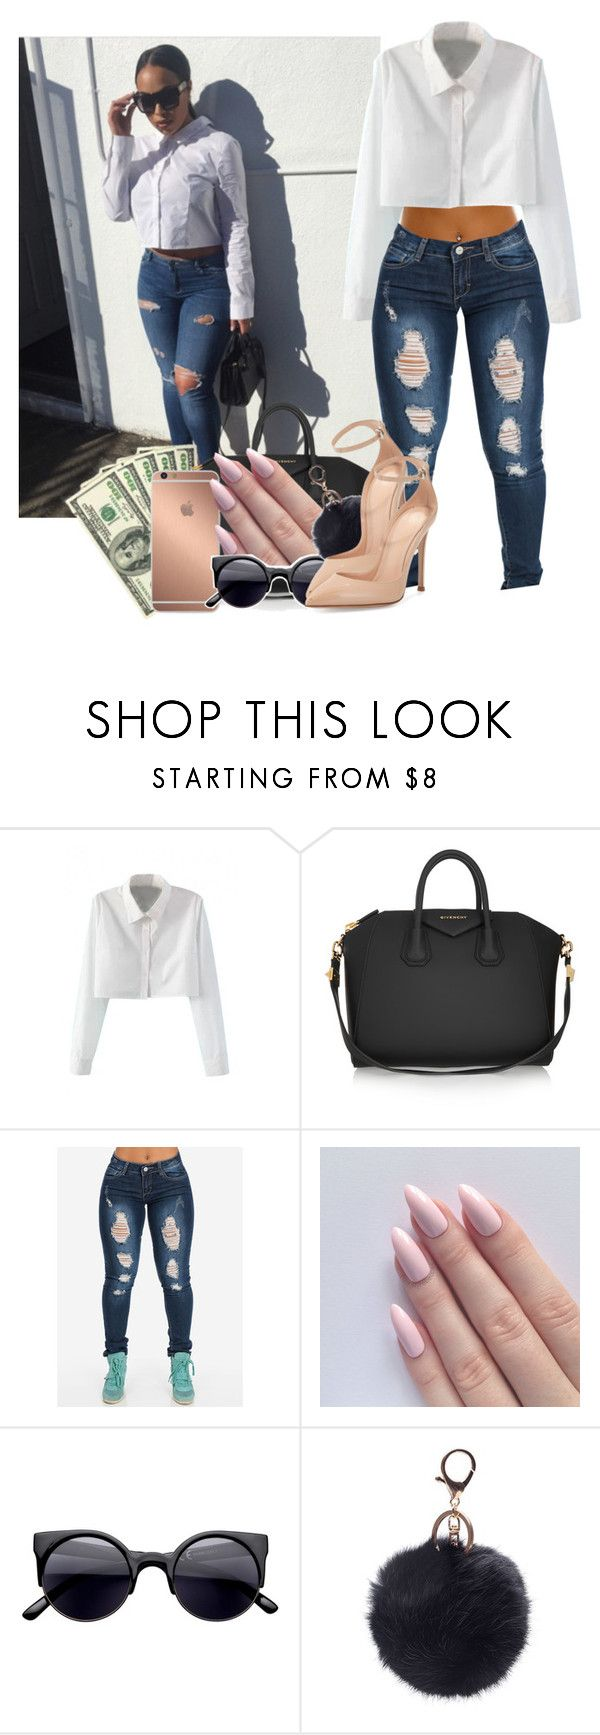 """""""Class not Trash"""" by heavensincere ❤ liked on Polyvore featuring WithChic, Givenchy, Mura and Gianvito Rossi"""